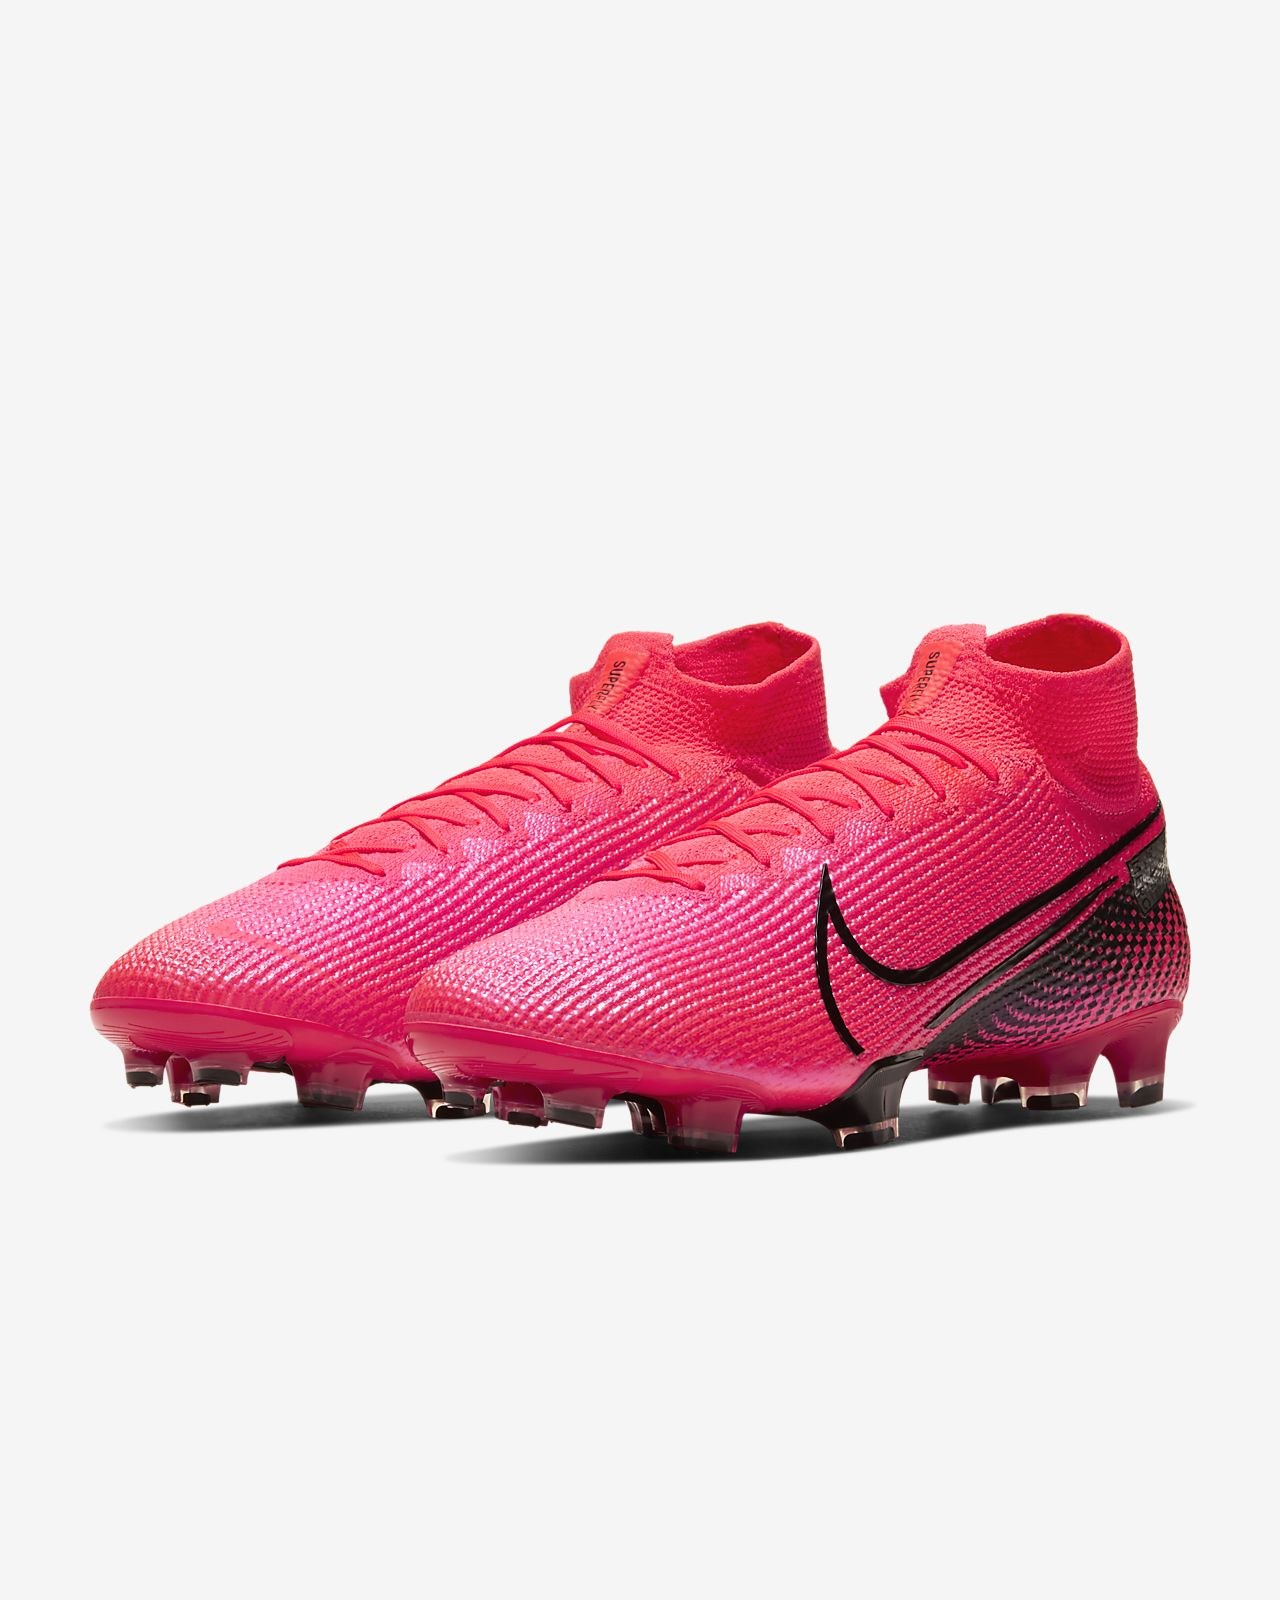 Football Boots Nike Mercurial Superfly VI Academy CR7 SG Pro